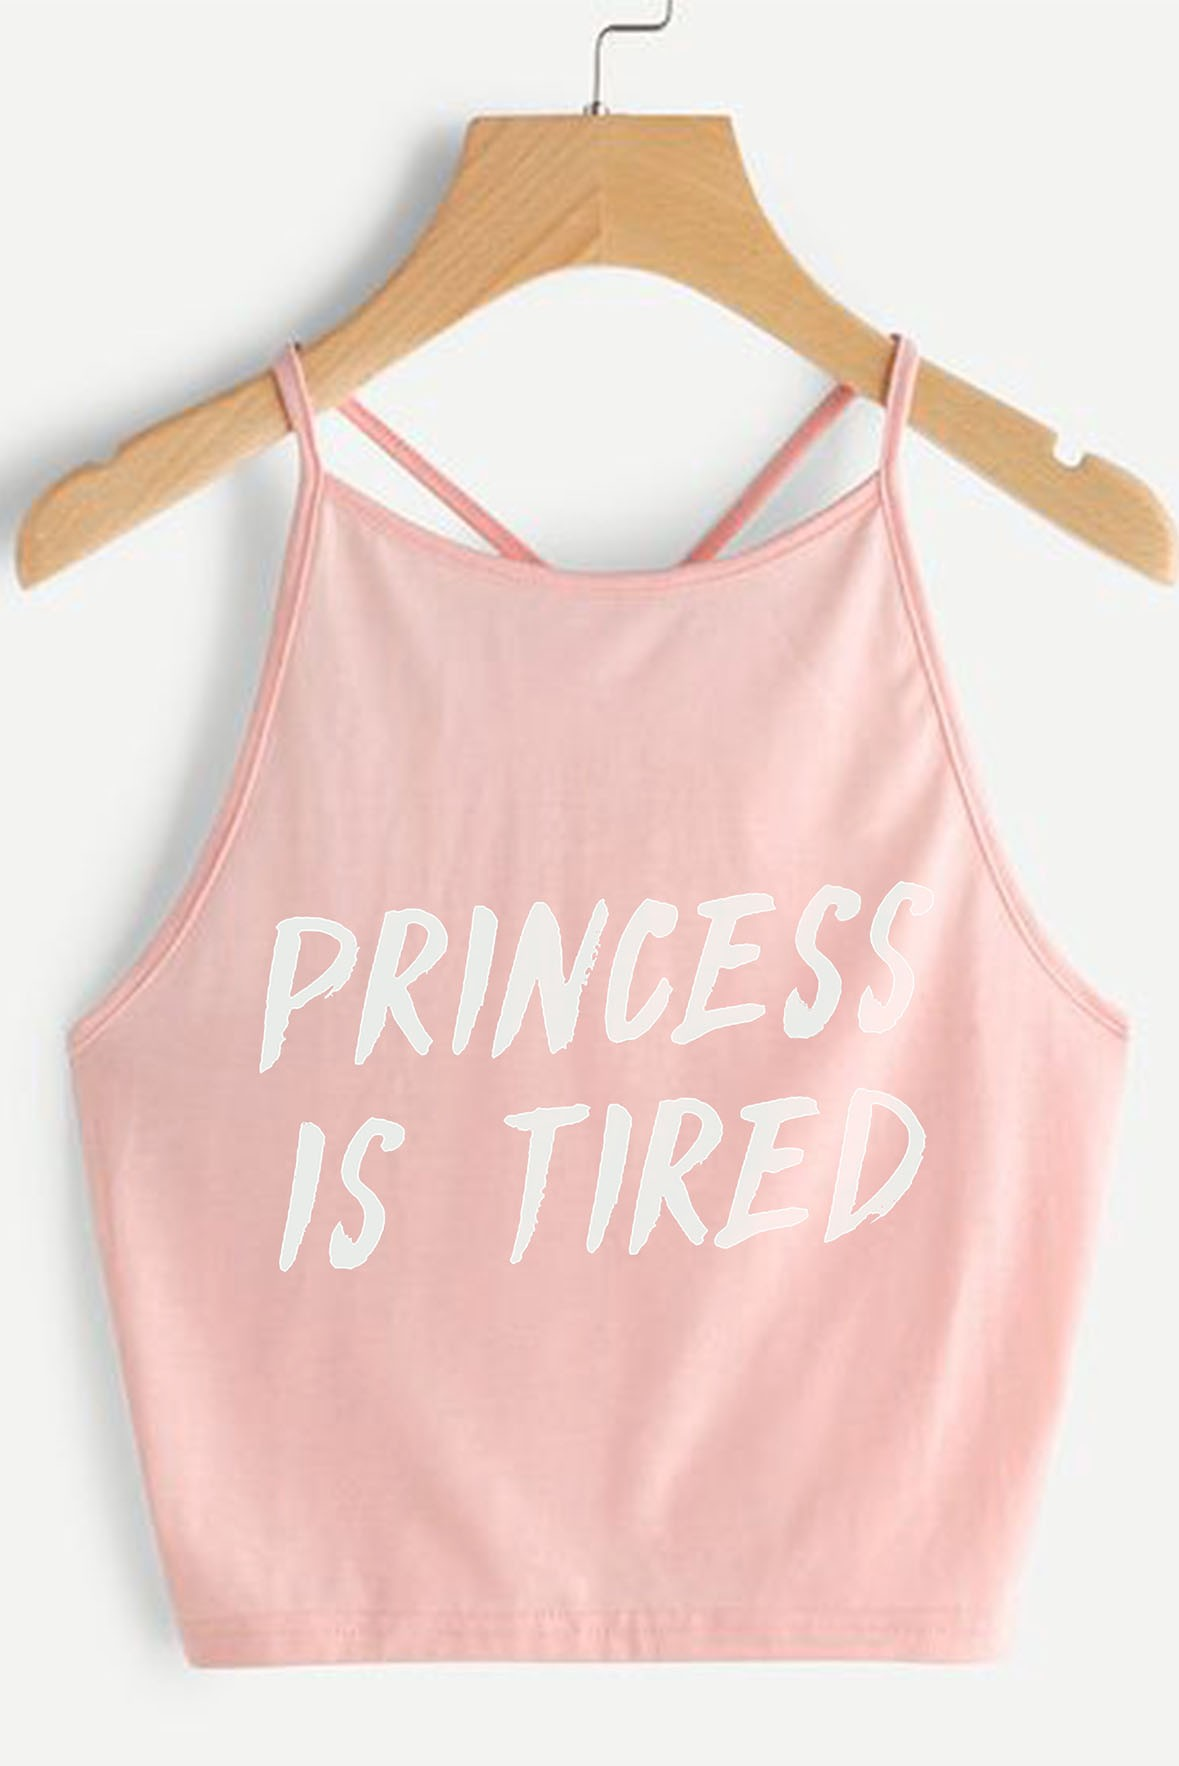 Princess is tired pink white crop top